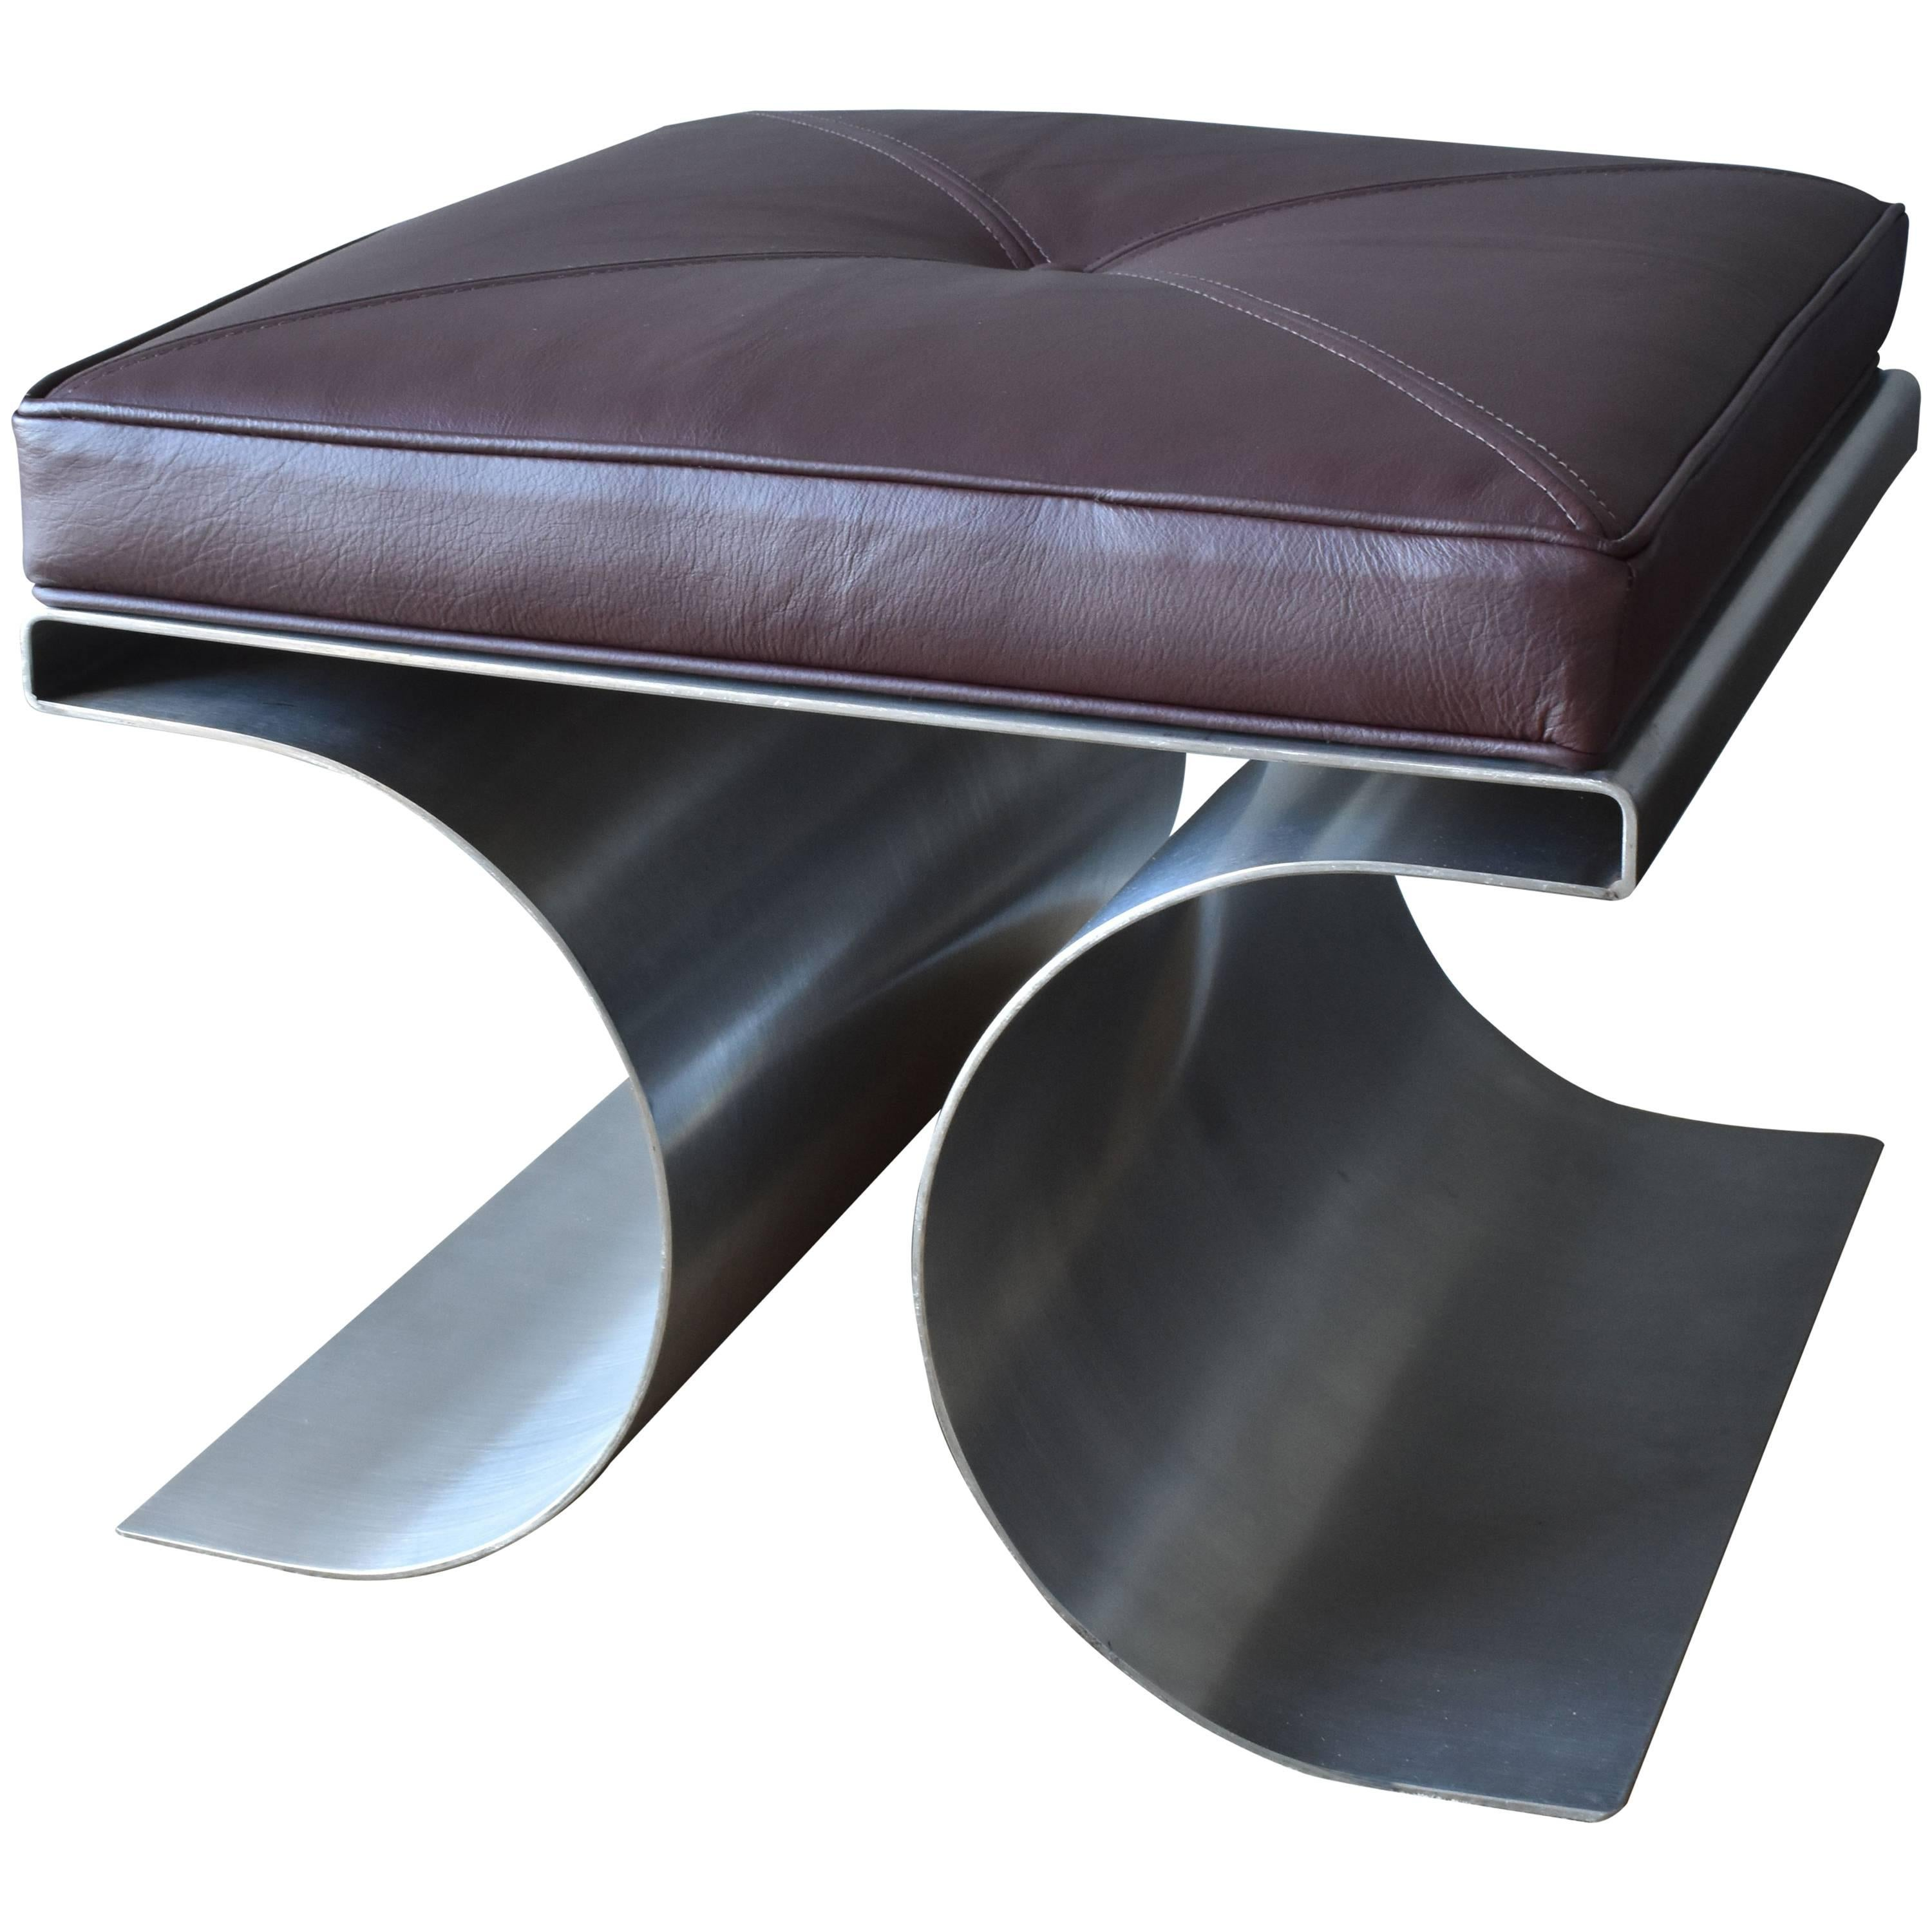 Superior Michel Boyer, U0026quot;Xu0026quot; Stool, Stainless Steel And Brown Leather  Cushion,